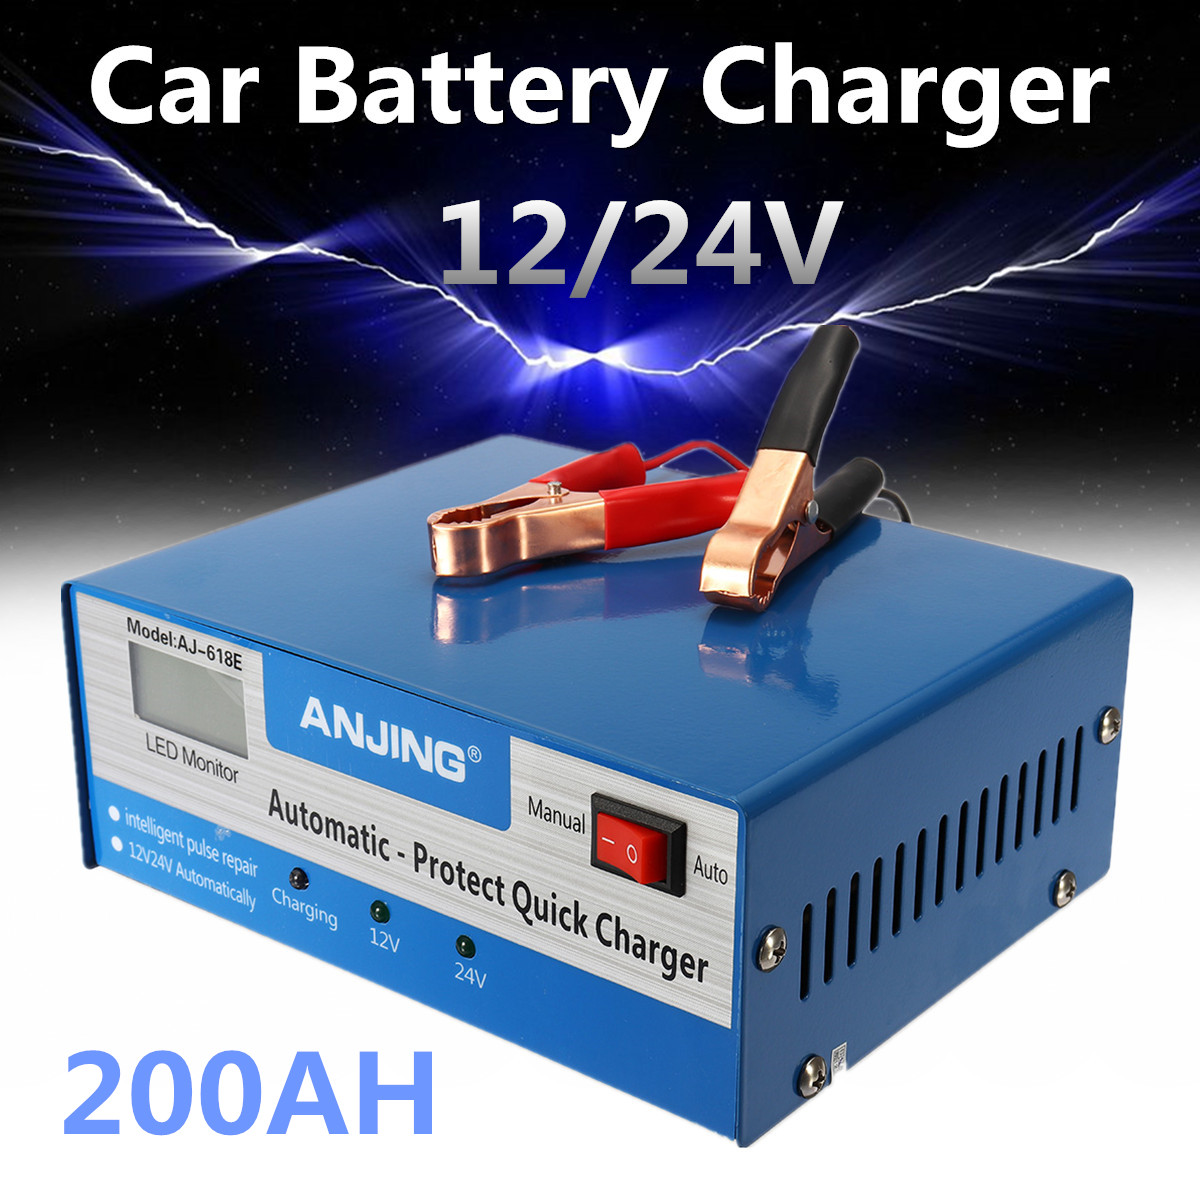 Car Battery Charger Intelligent Pulse Repair Full Automatic protect quick Chargers 130V 250V 200AH 12/24V With Adapter|Chargers & Service Equipment| |  - title=